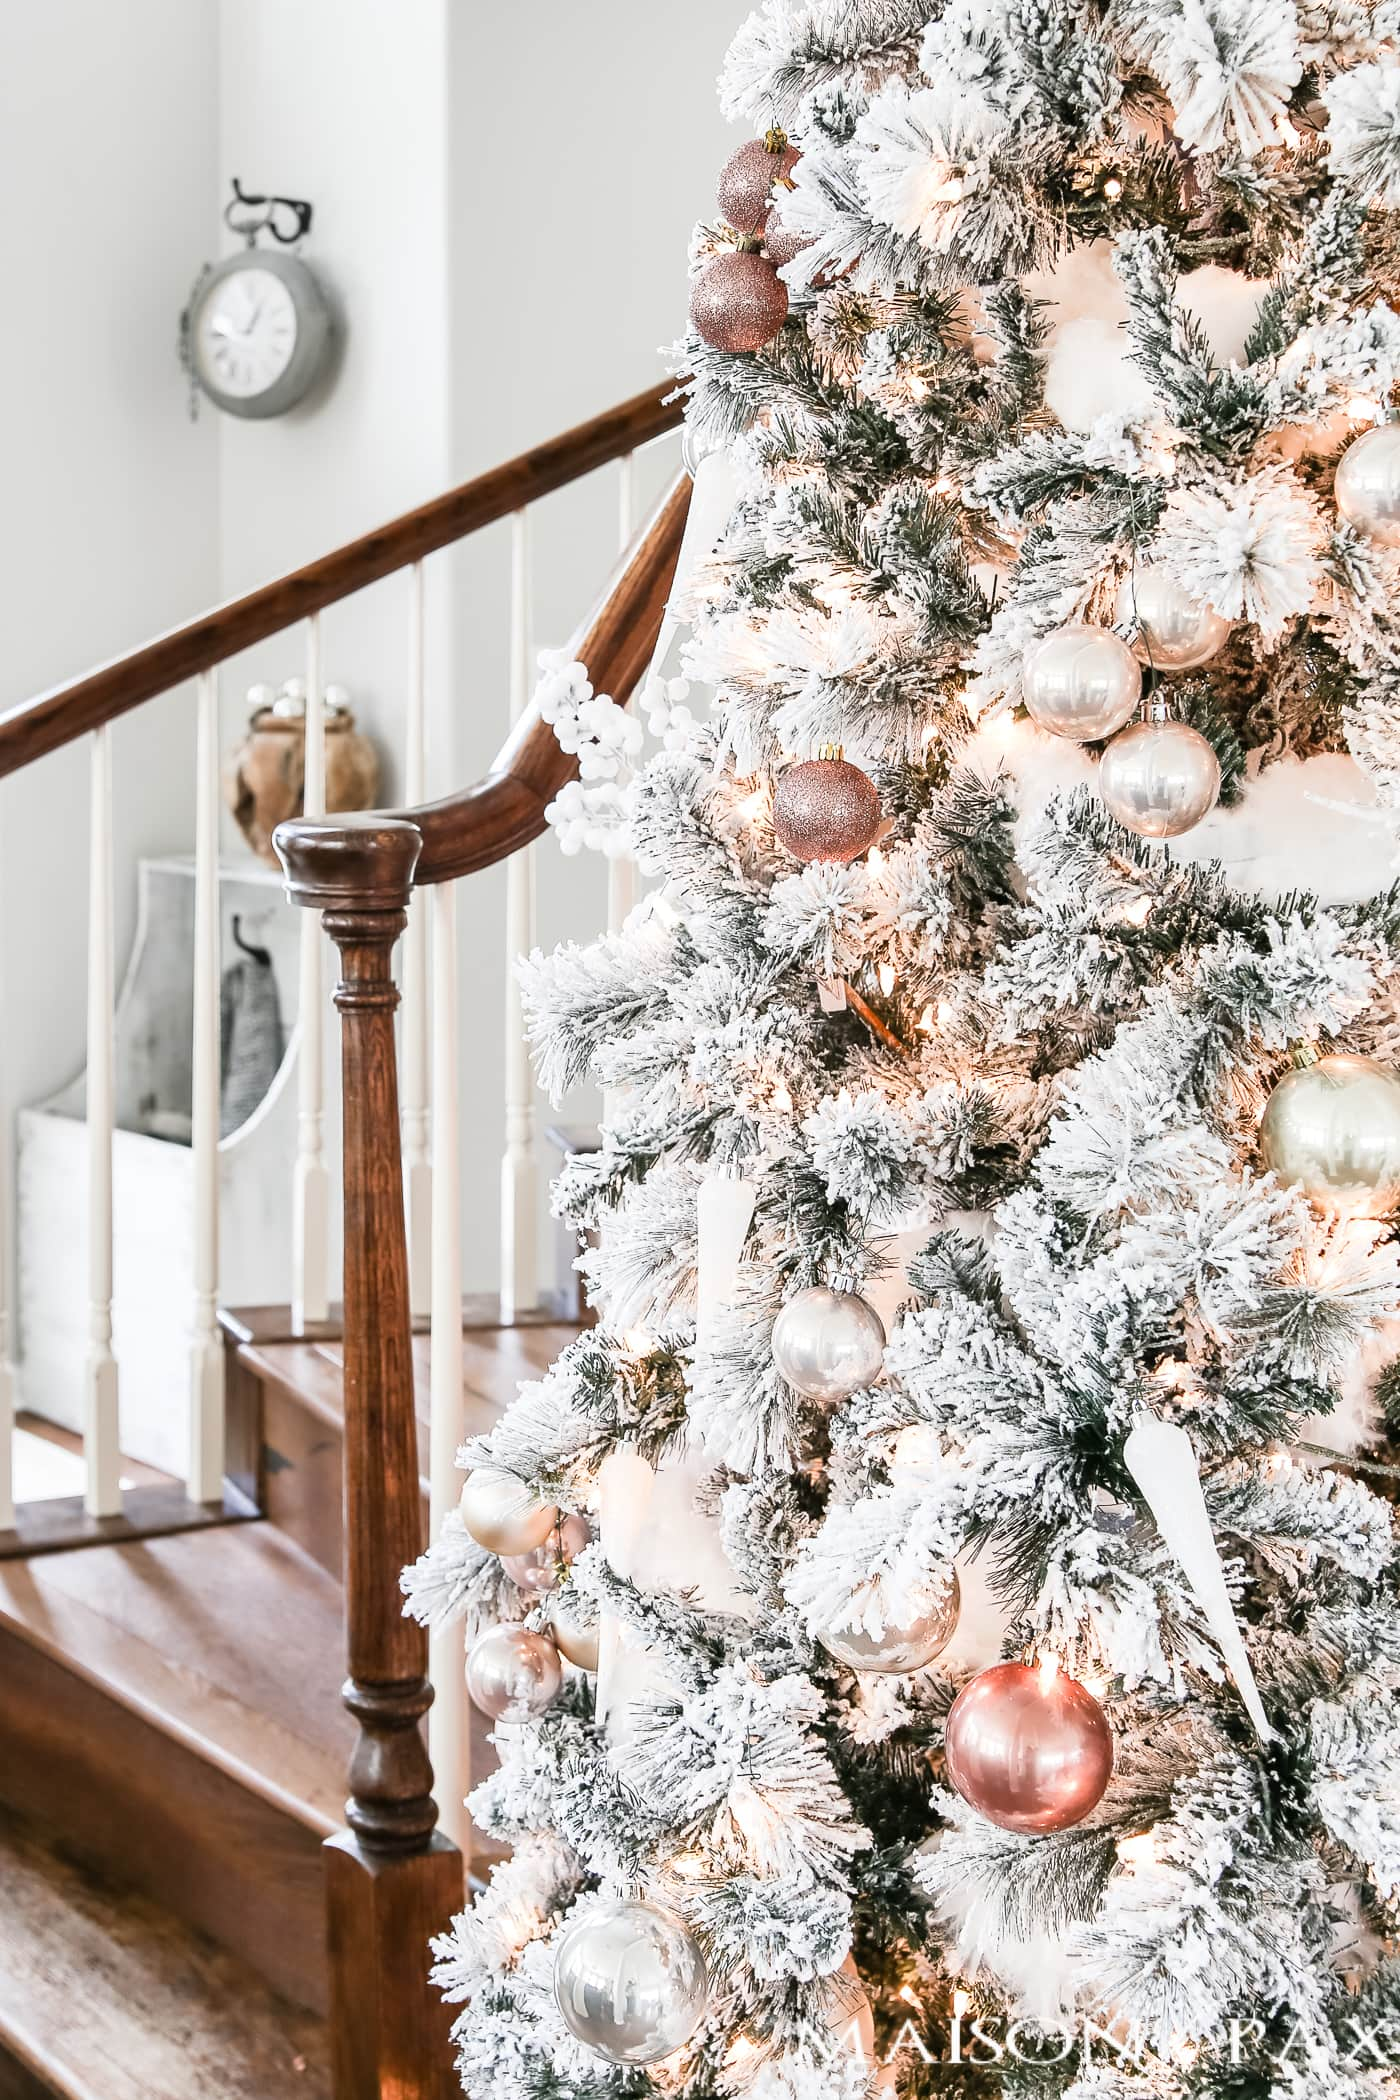 blush and copper and icicle white ornaments on a full flocked tree #flockedtree